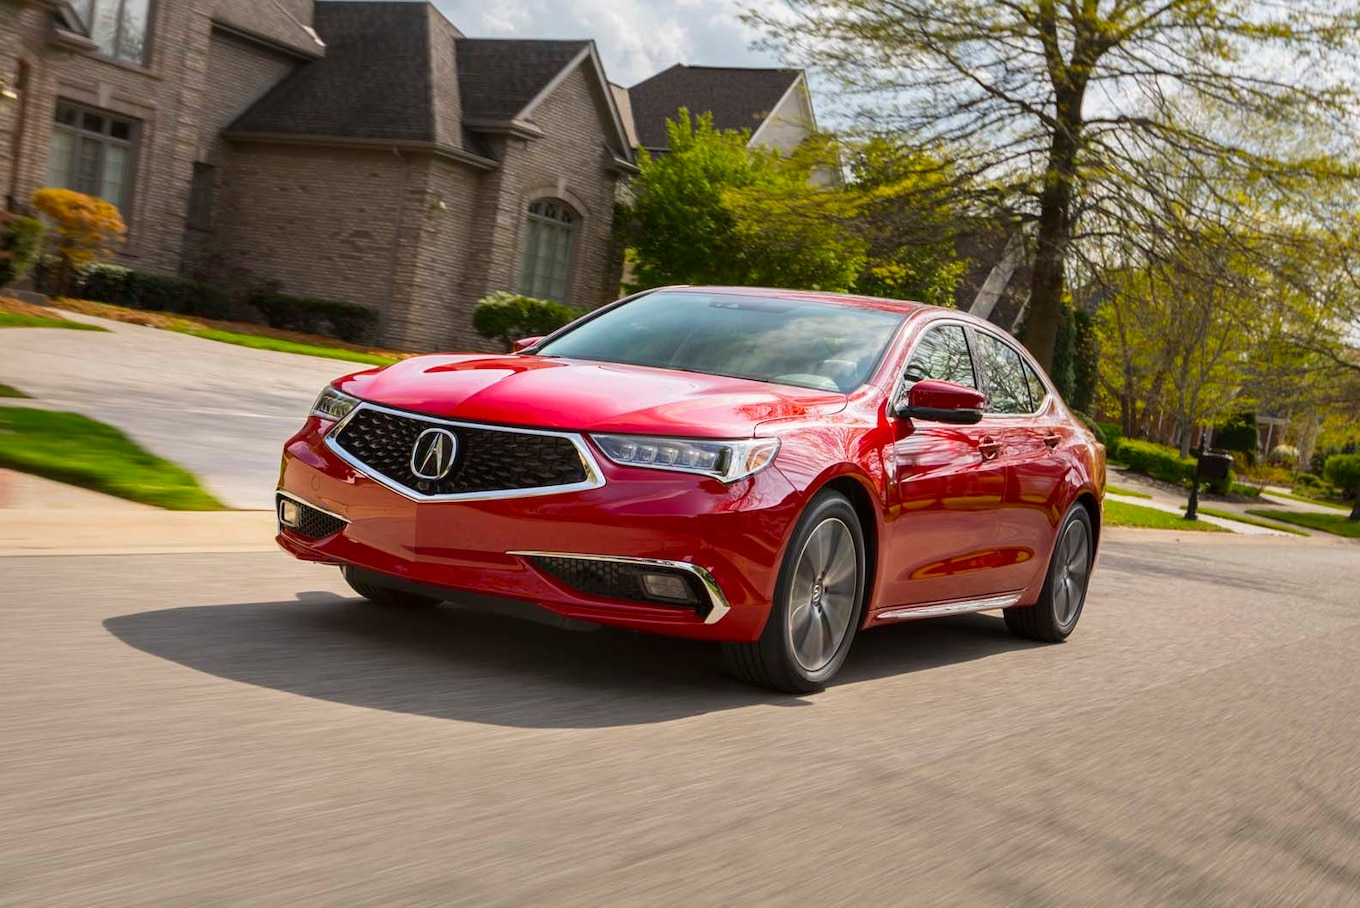 Seven Cool Facts You Didnt Know About The 2018 Acura TLX